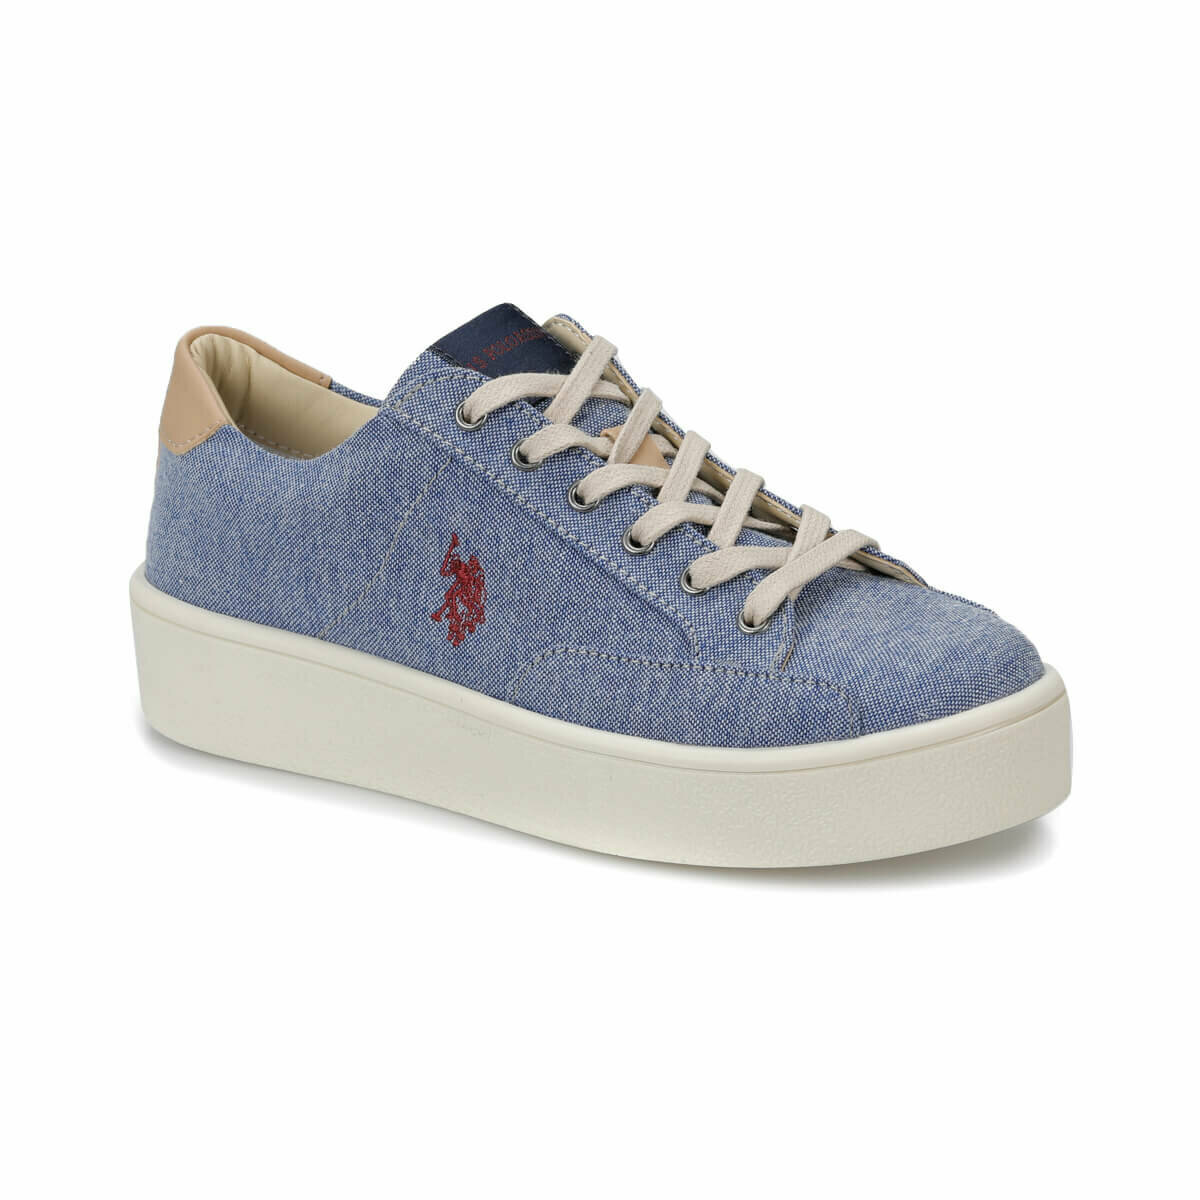 FLO MARIQ Blue Women 'S Sneaker Shoes U.S. POLO ASSN.